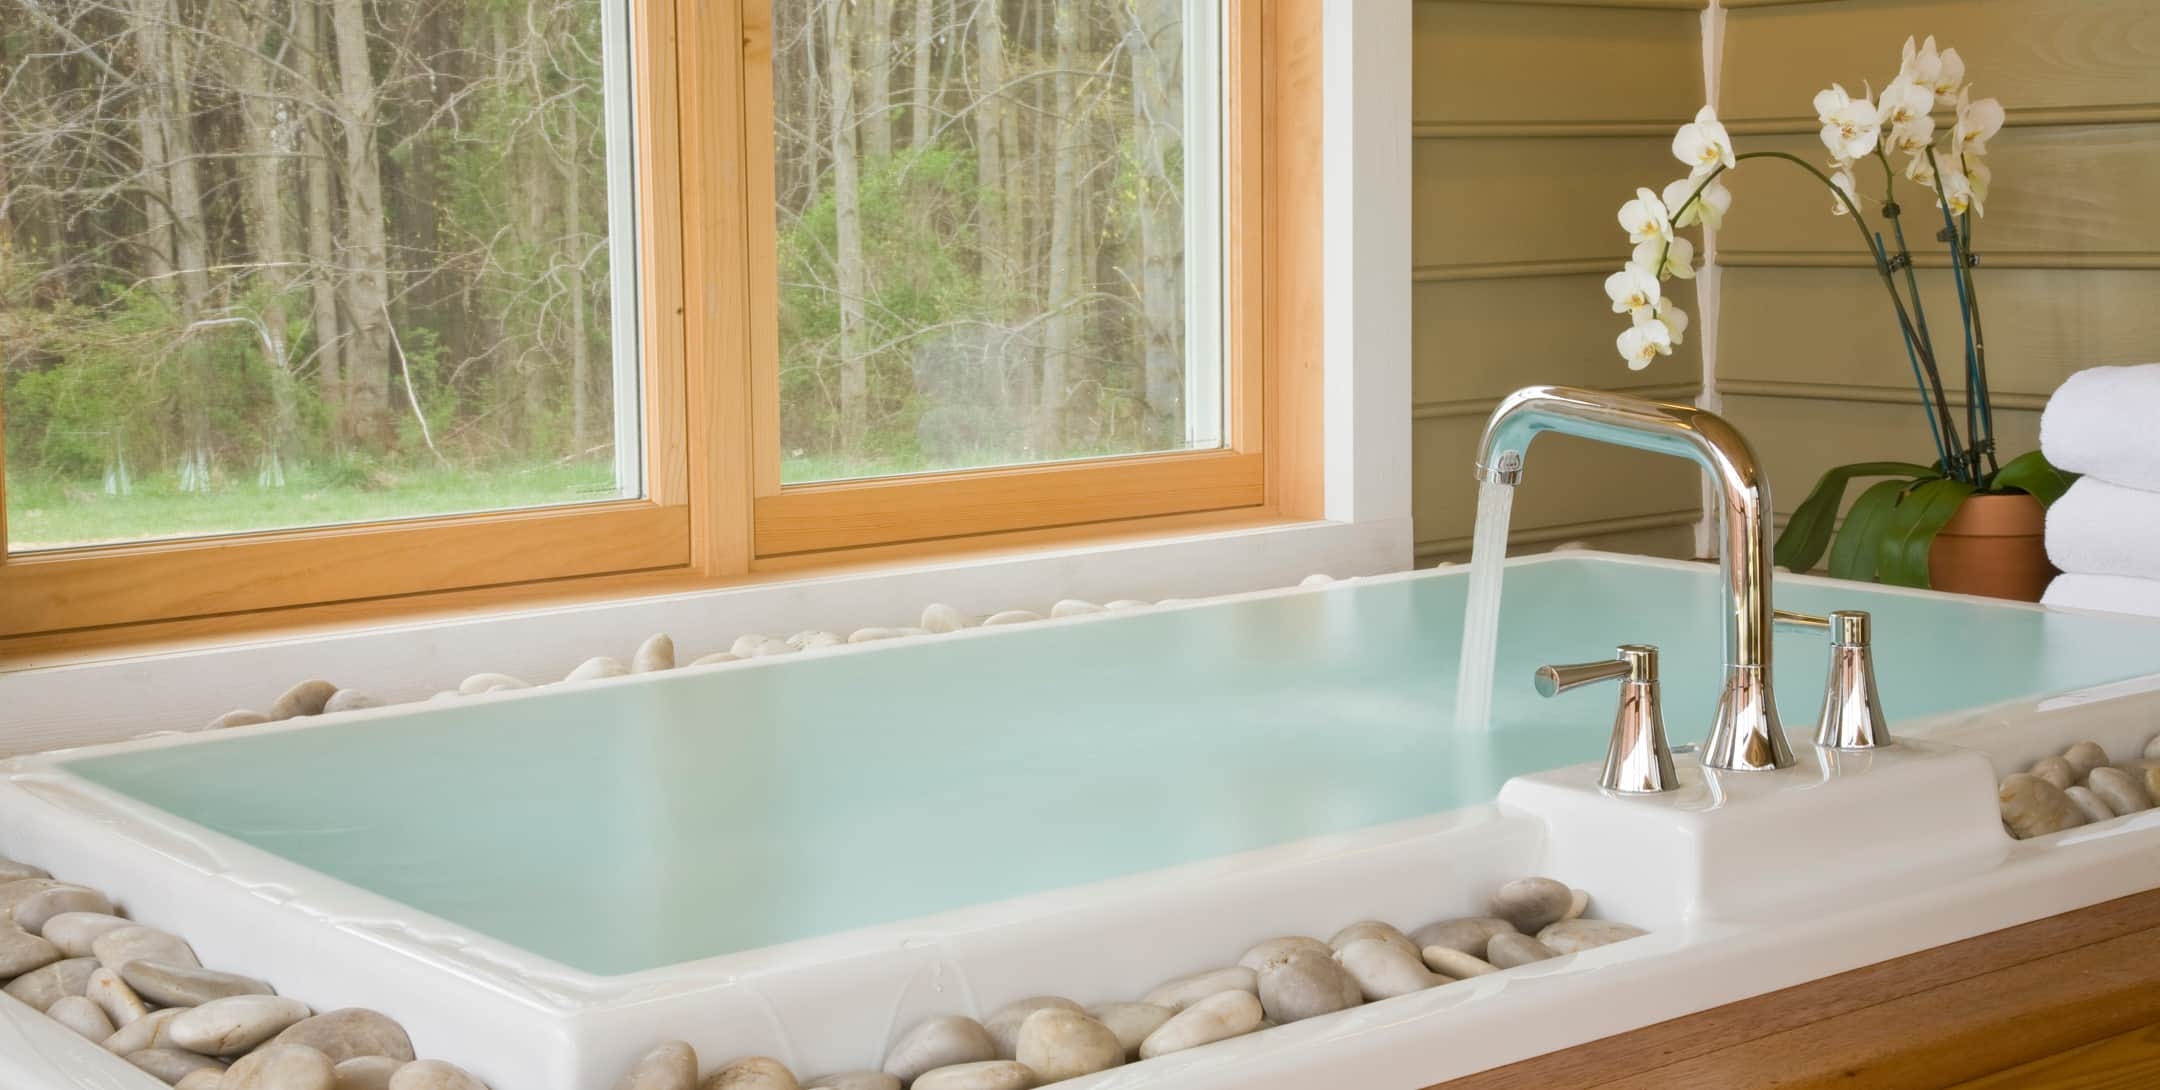 Japanese soaking tub in the Mulberry Cottage at Brampton Inn